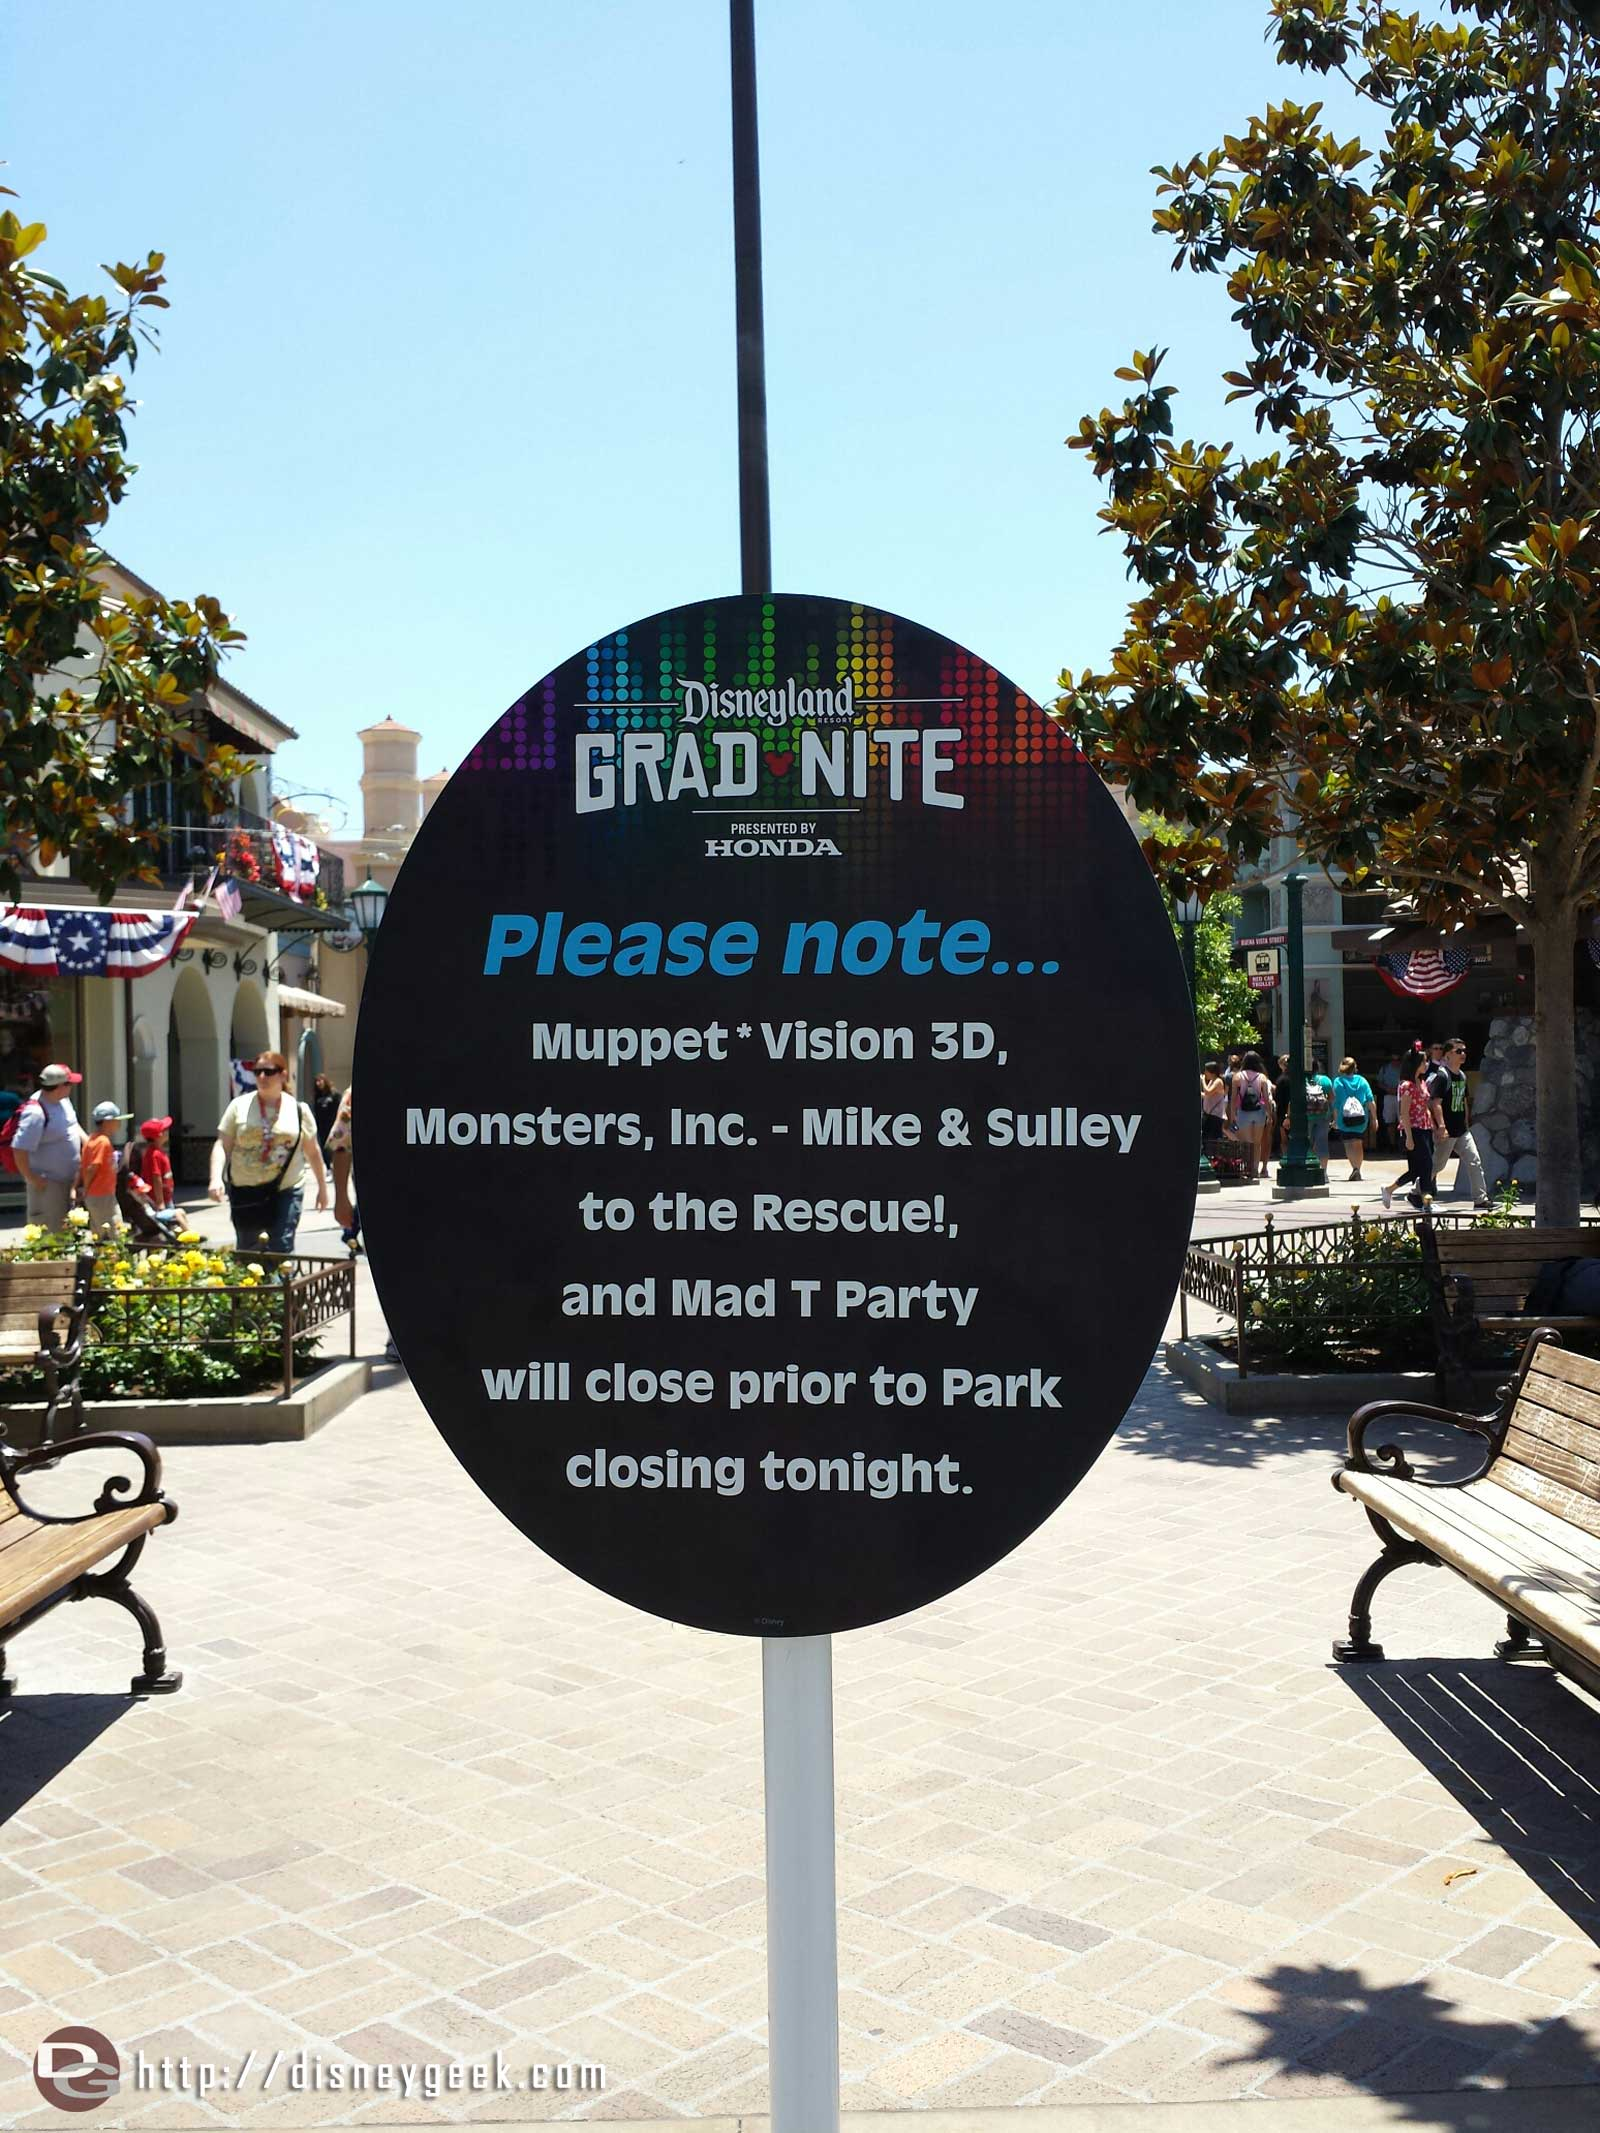 Tonight is a gradnite some attractions have reduced hours